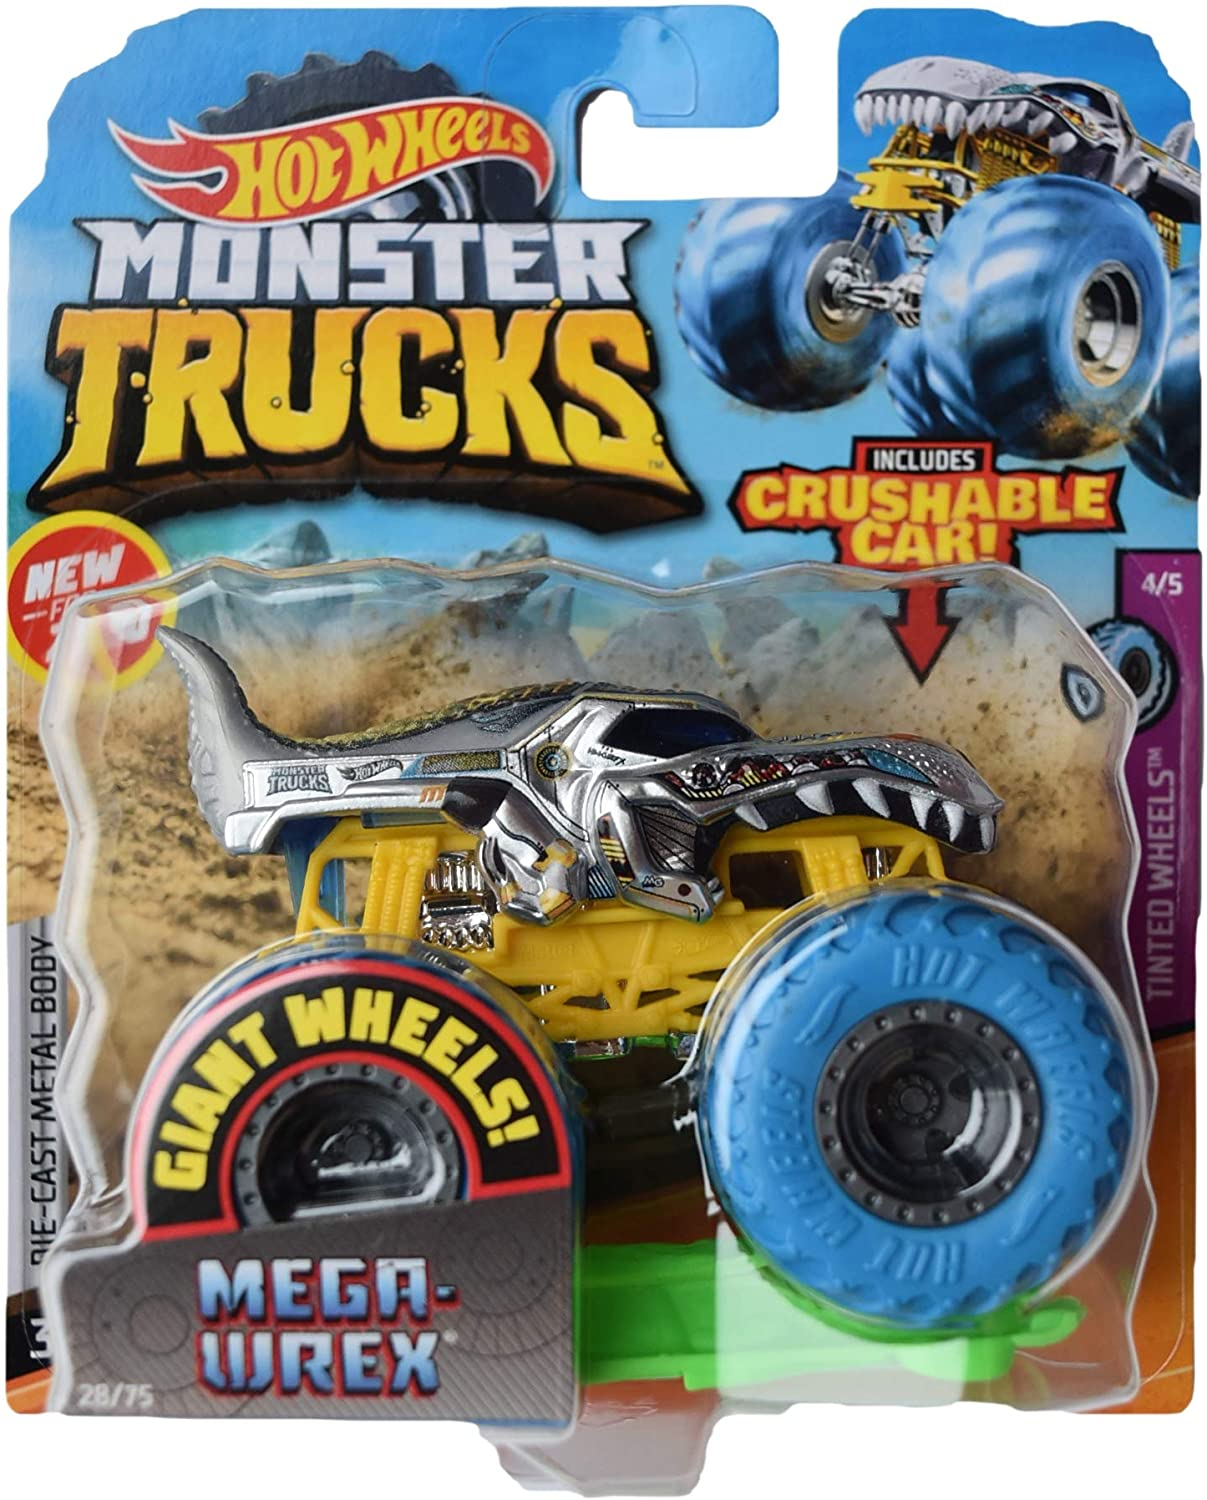 Hot Wheels Monster Trucks 1:64 Scale Mega Wrex 28/75 Includes Crushable Car, Gray with Blue Wheels